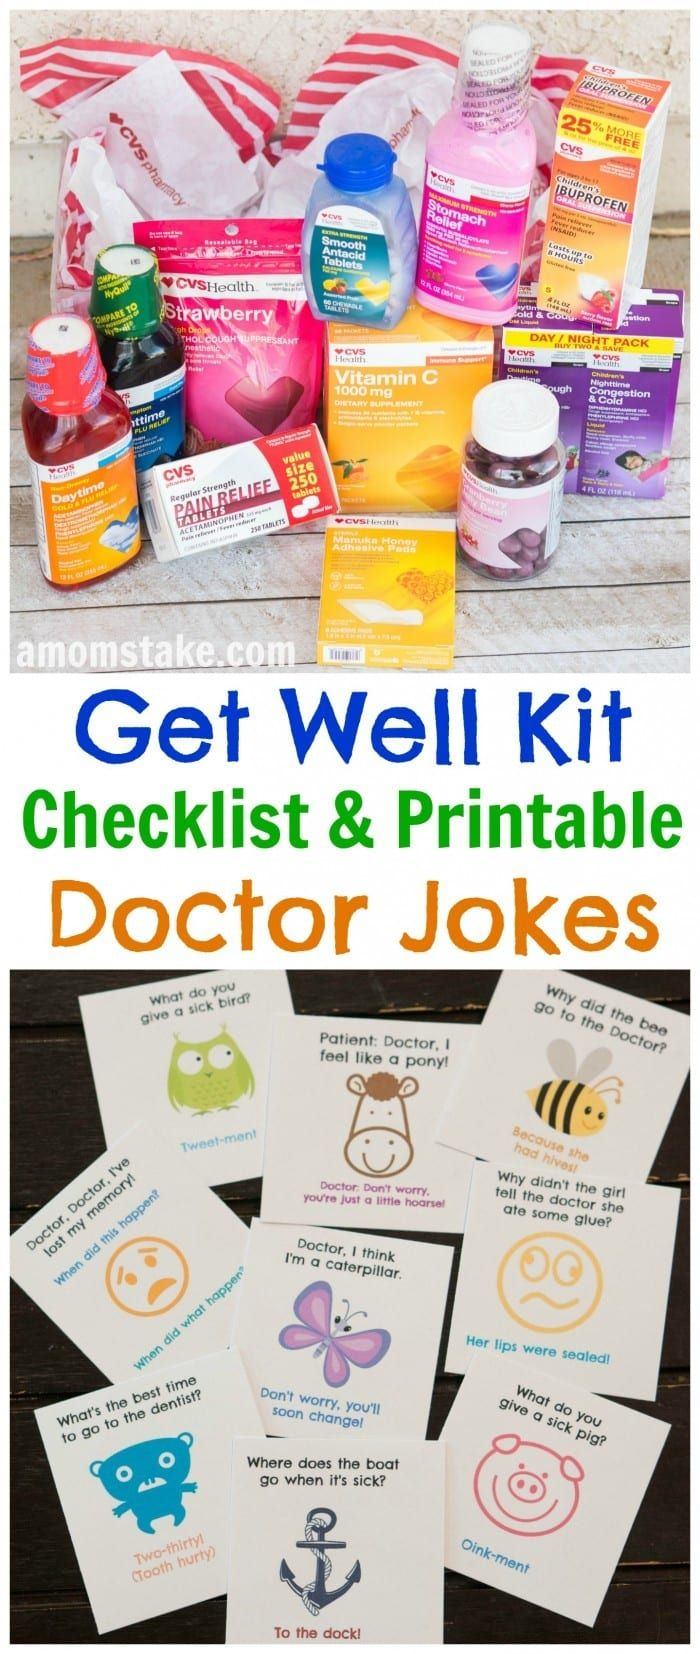 A well stocked medicine cabinet will have you prepared and ready for whatever comes your way through fall and cold and flu season. This list covers all the essentials to keep on hand. Plus, an adorable bonus set of kids doctor jokes to cheer up the family when a bug does hit. via @amomstake